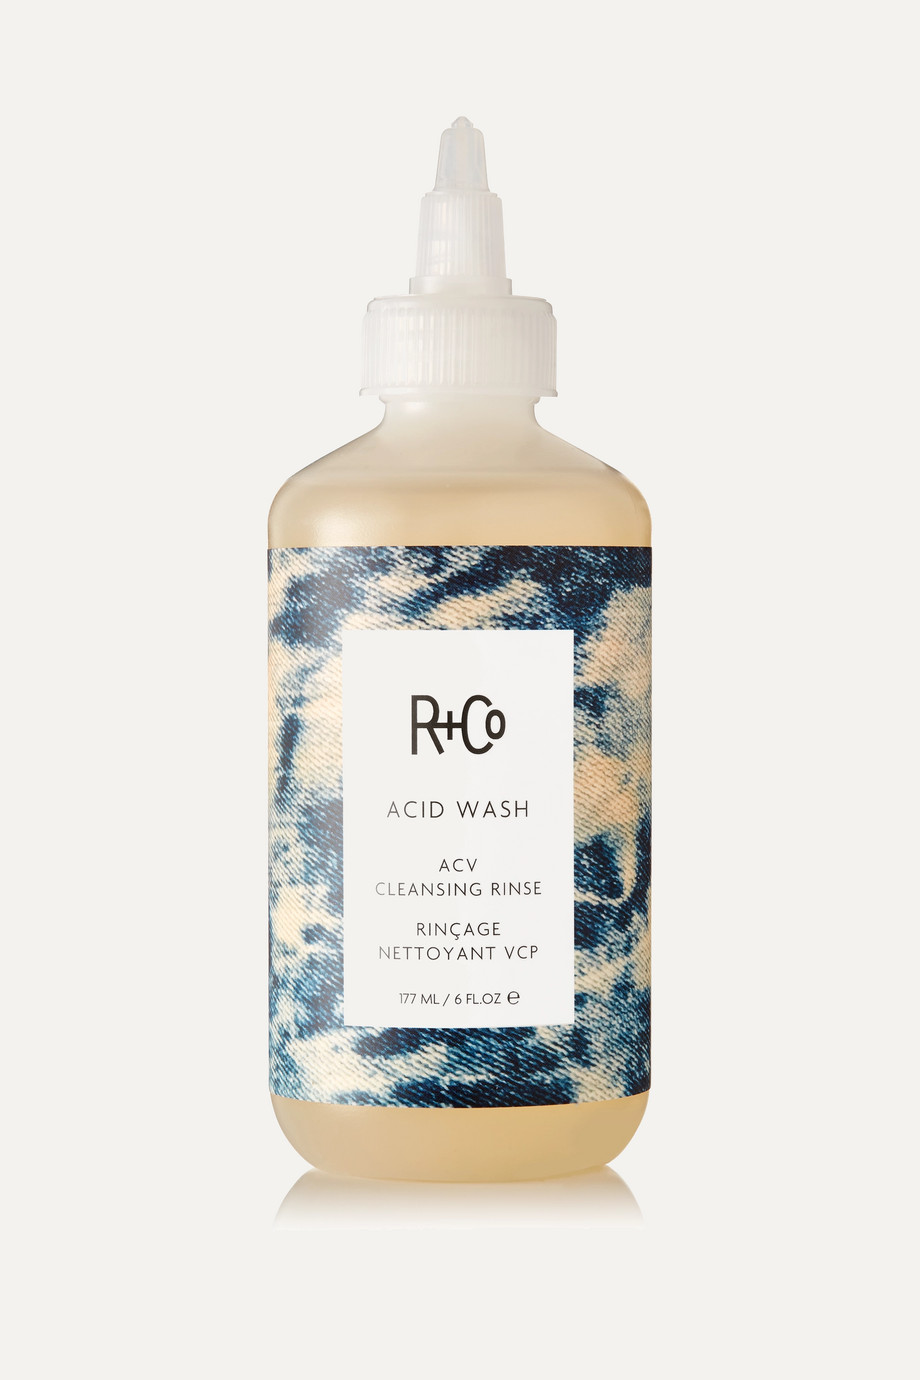 R+CO Acid Wash: ACV Cleansing Rinse, 117ml